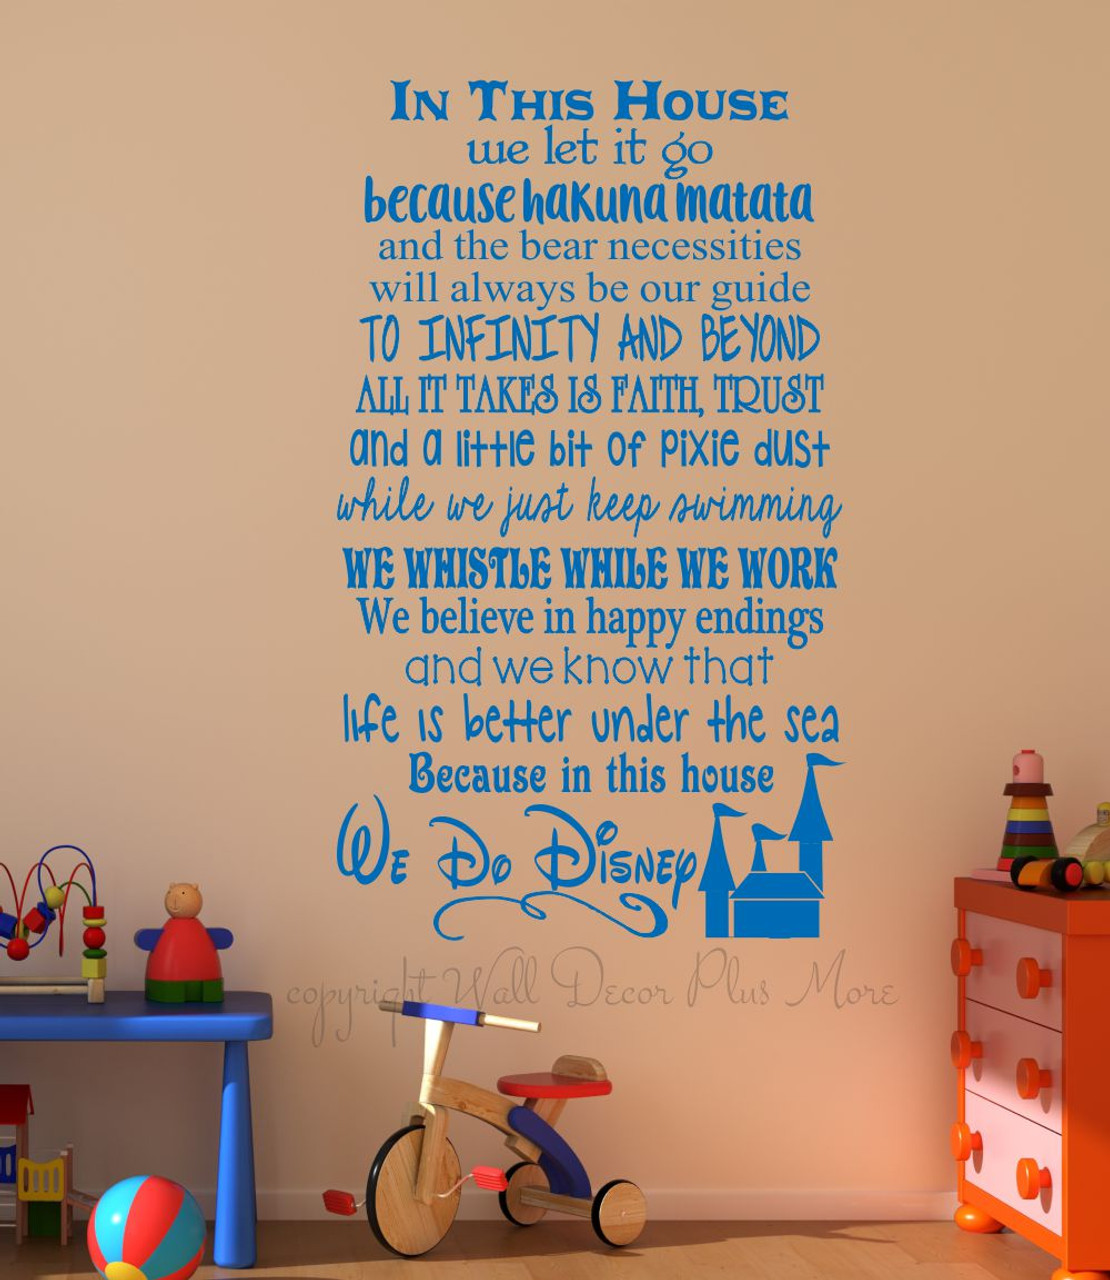 We Do Disney, Wall Decals Letters For Cool Room Decor